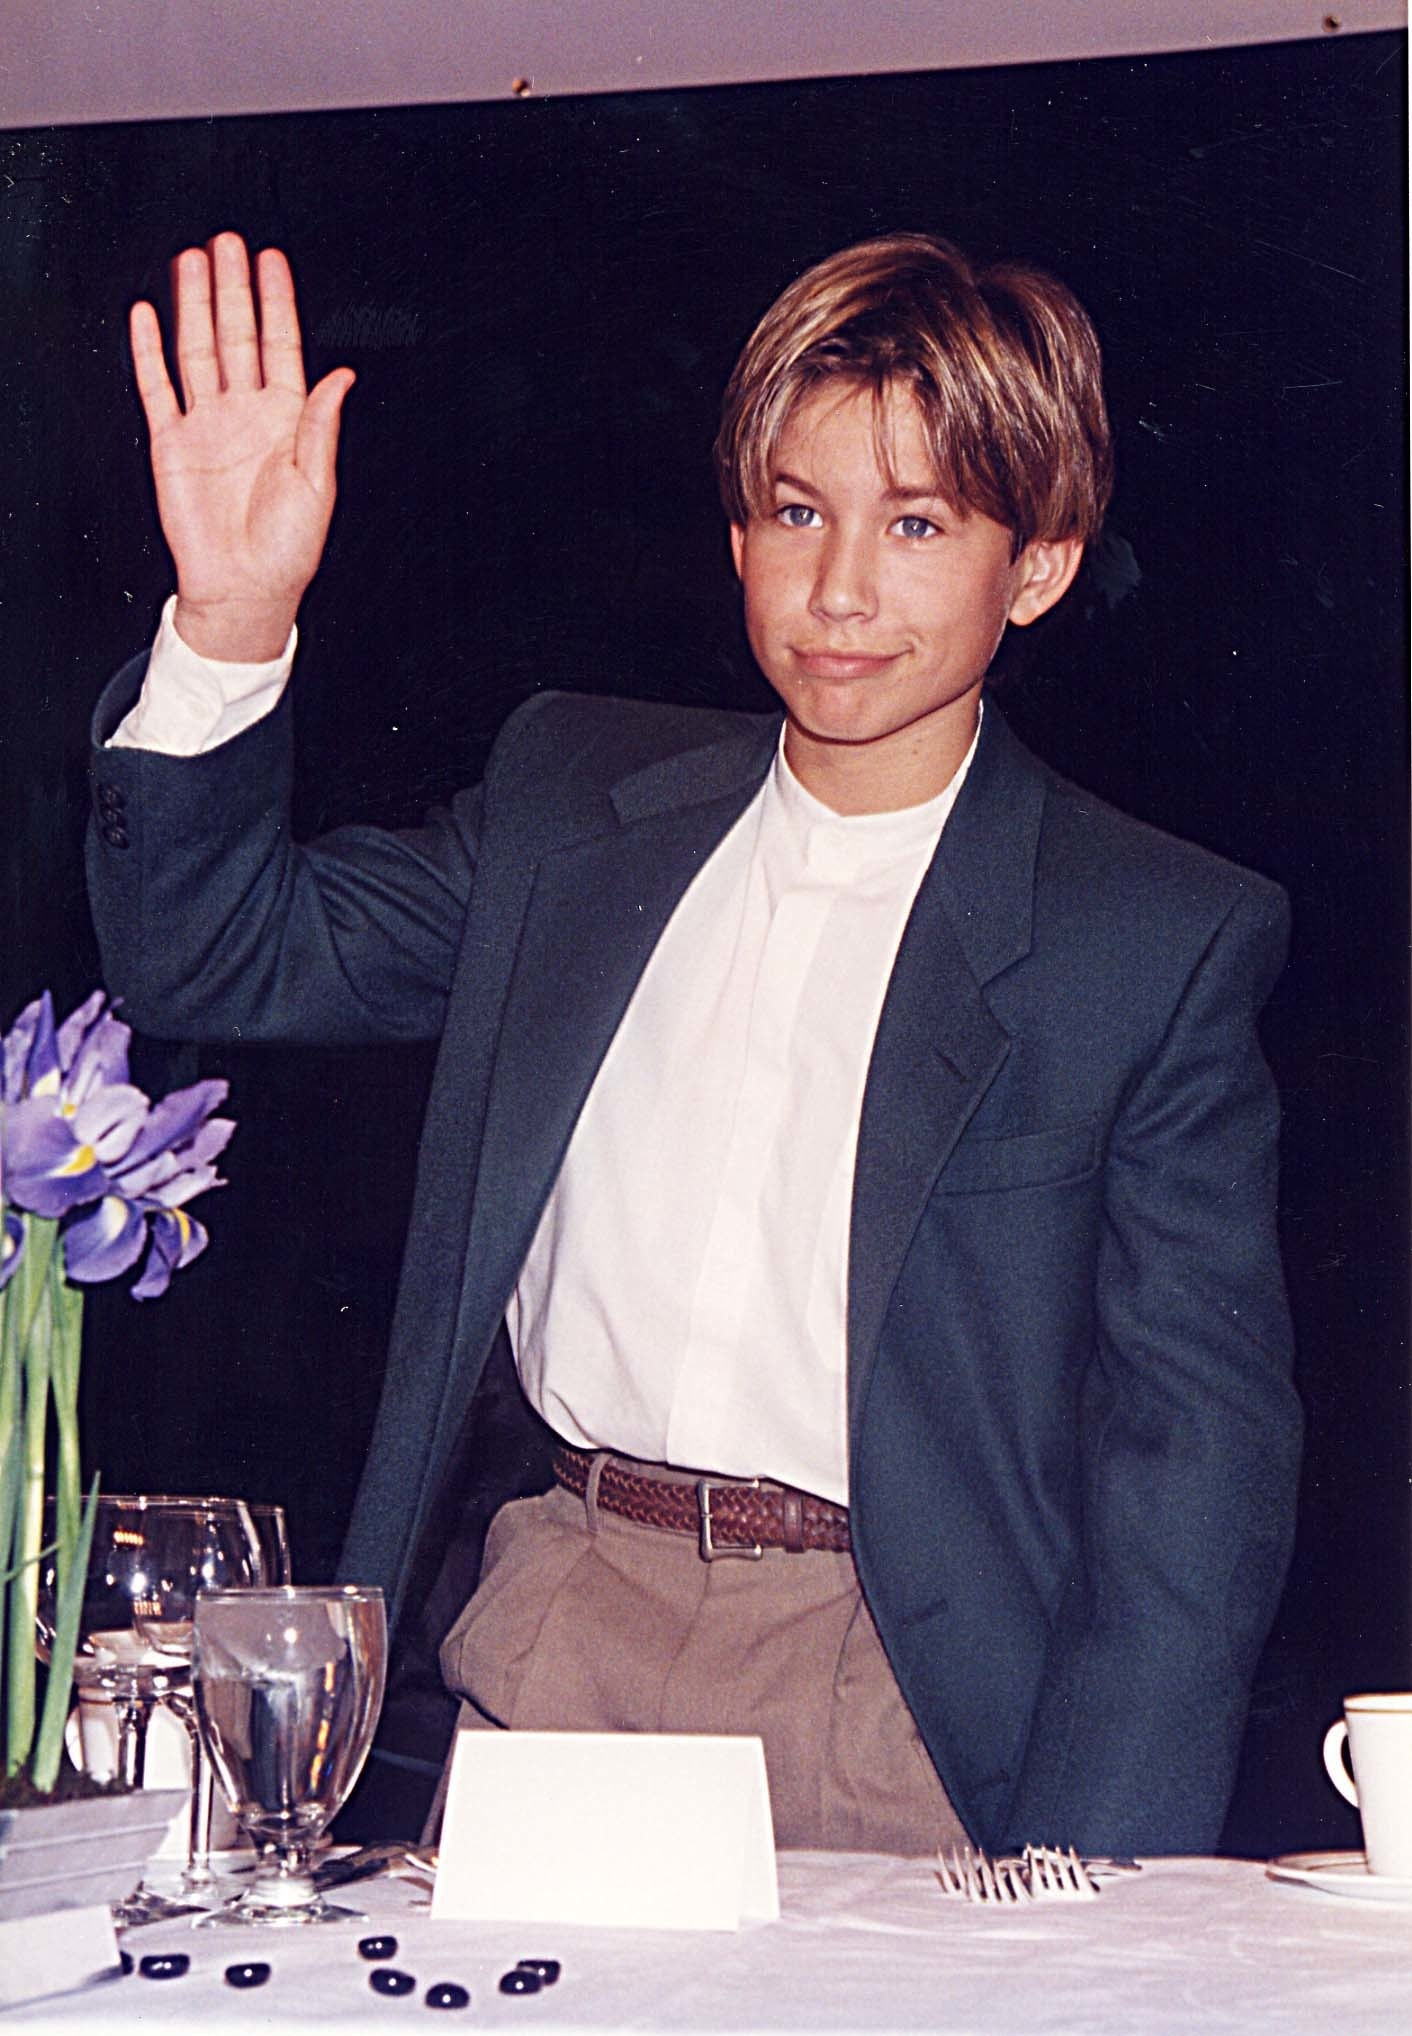 Jonathan Taylor Thomas waves during ShoWest '96 in Las Vegas, Nevada, United States